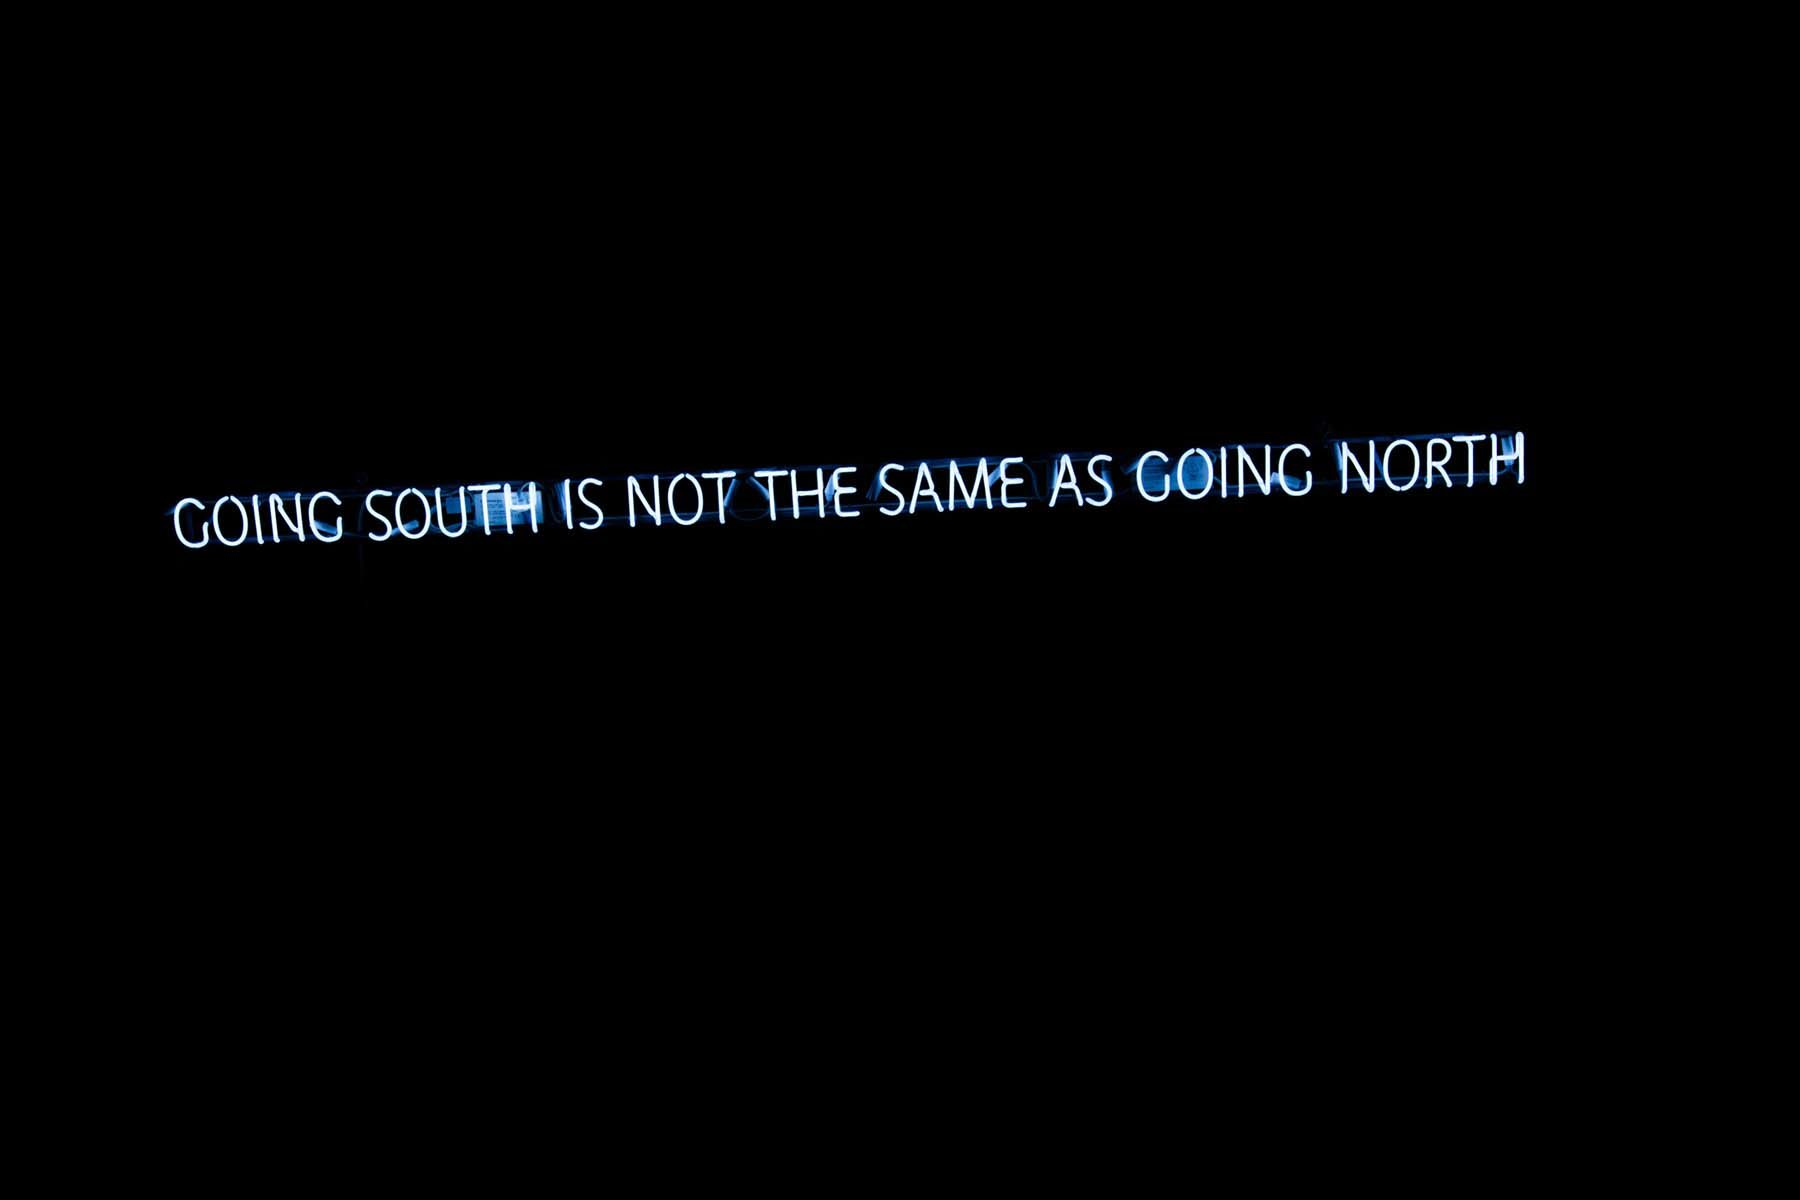 Marco Godinho, Going south is not the same as going north _ Going north is not the same as going south, 2017, neon diptych, each 15 x 220 cm